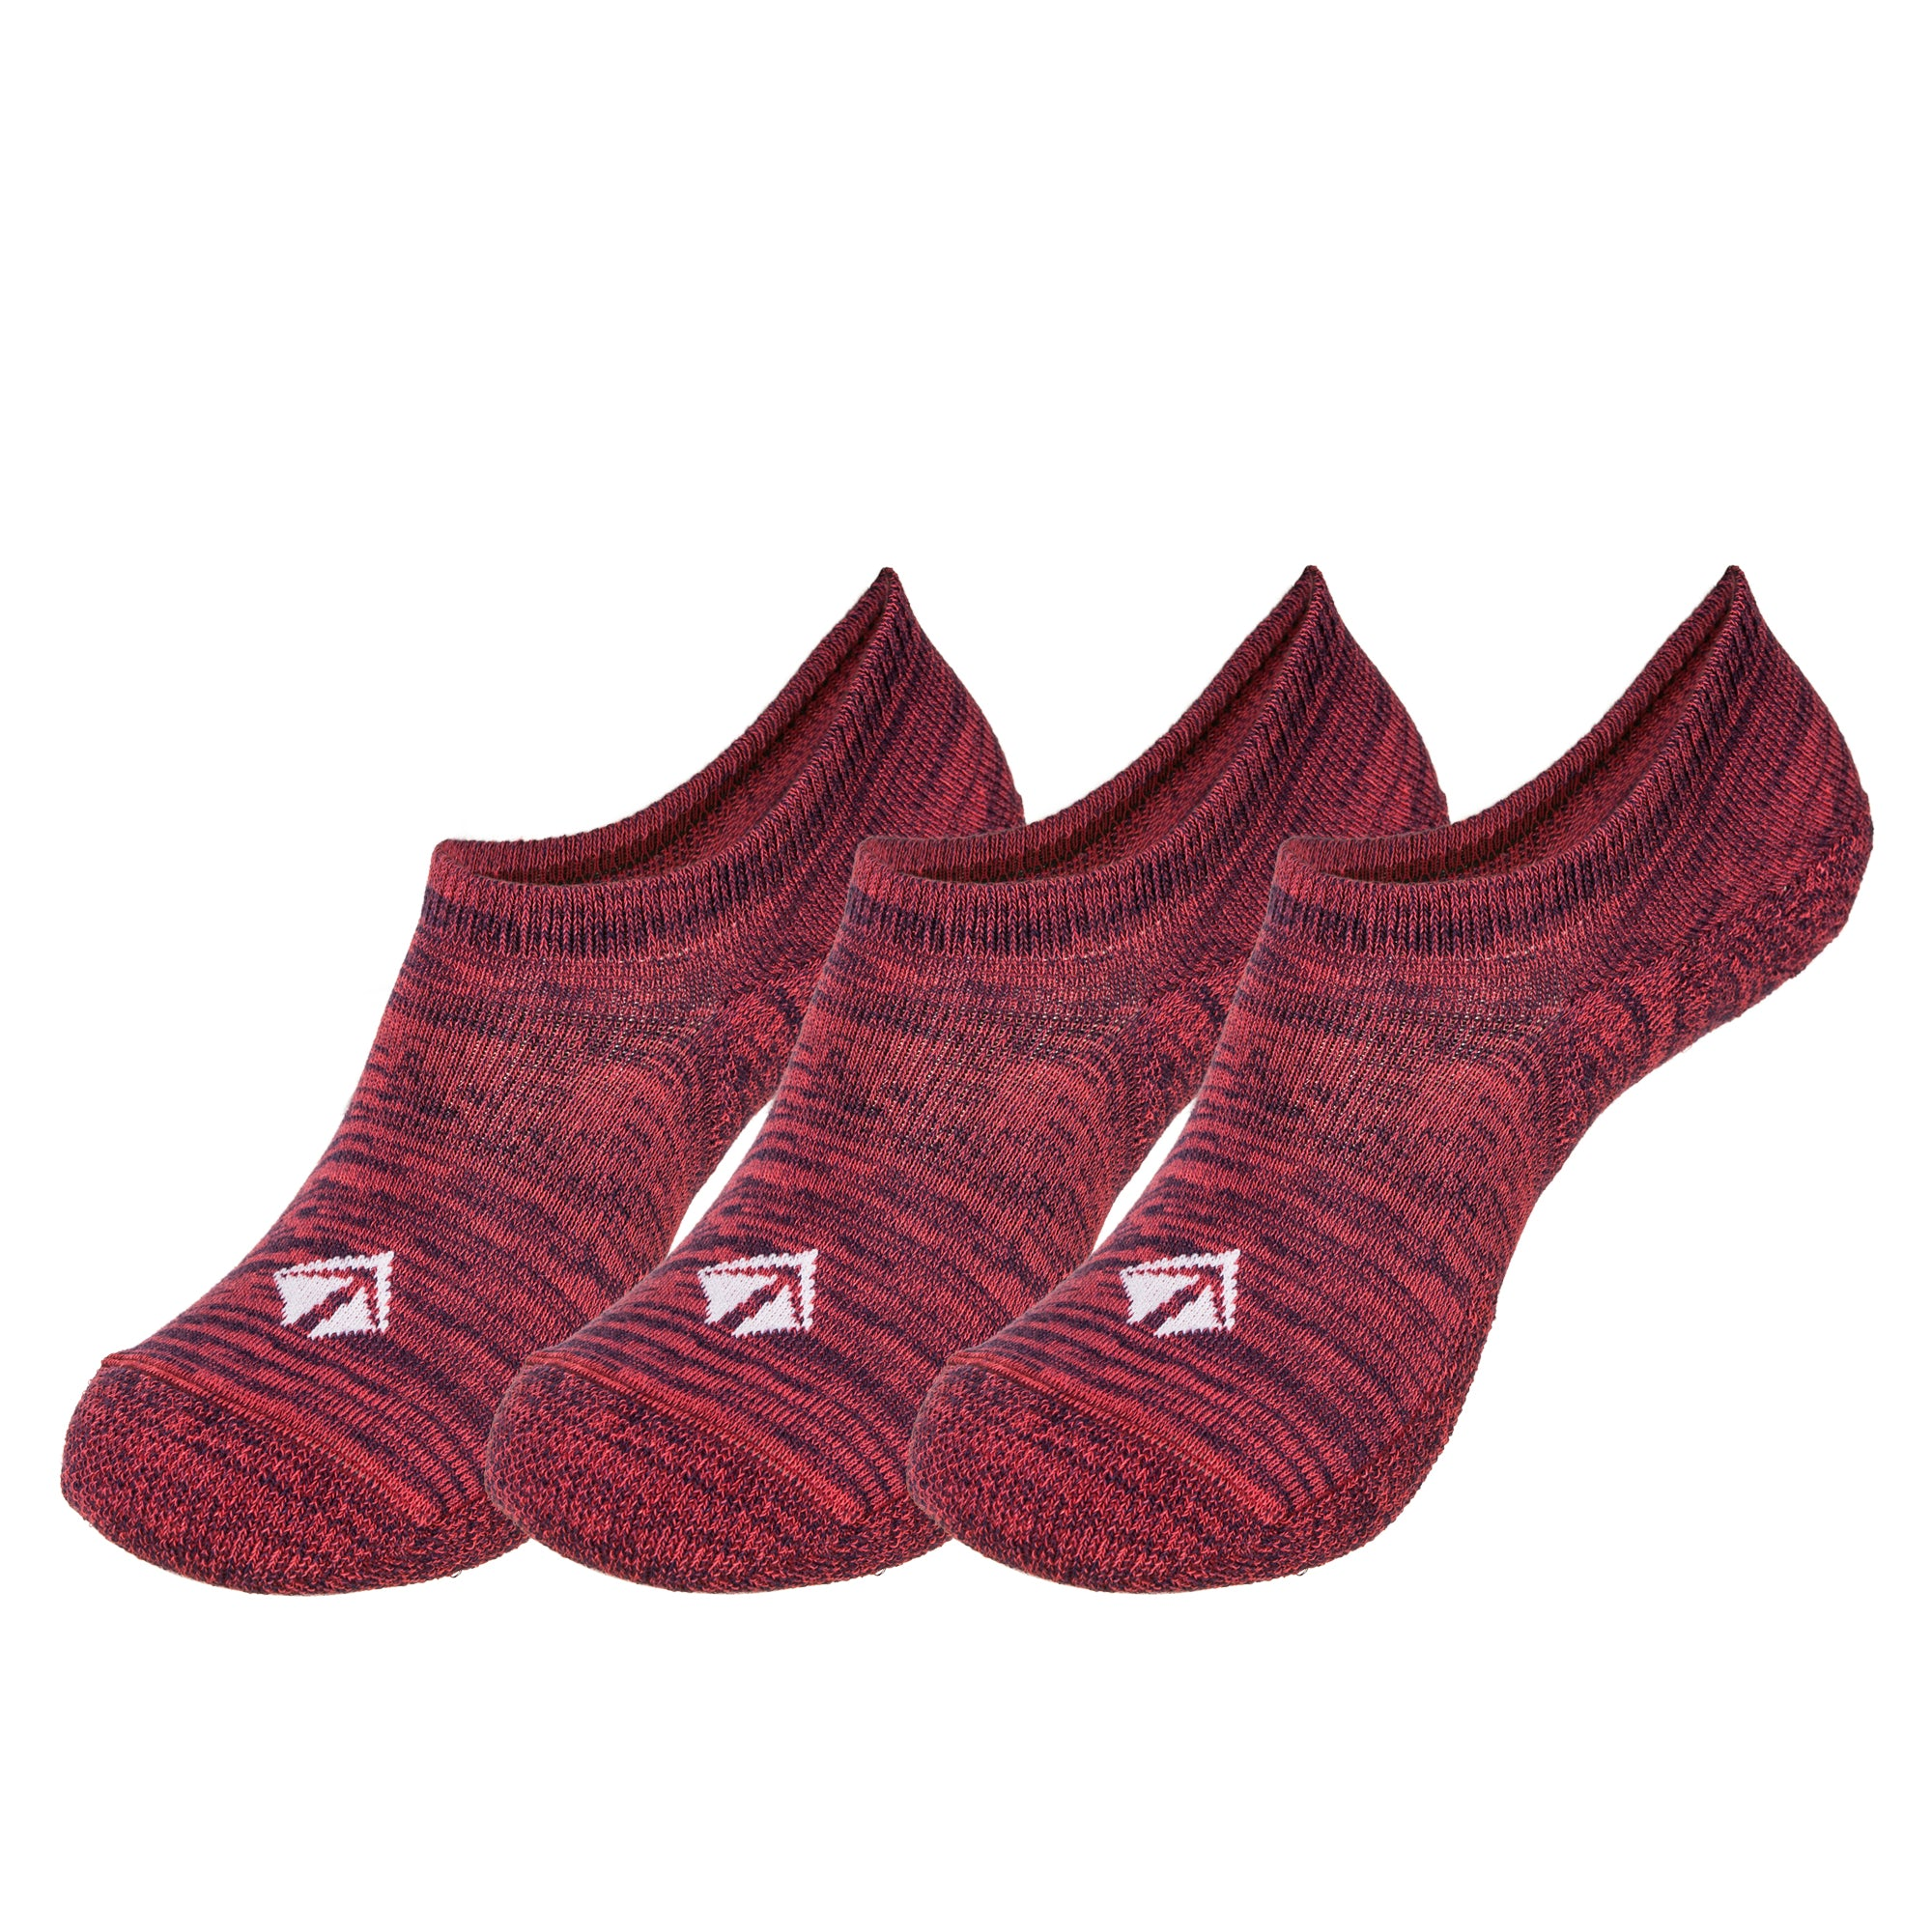 Atacama Low-cut Eco-sock (Red-Blue Marl) 3-pack